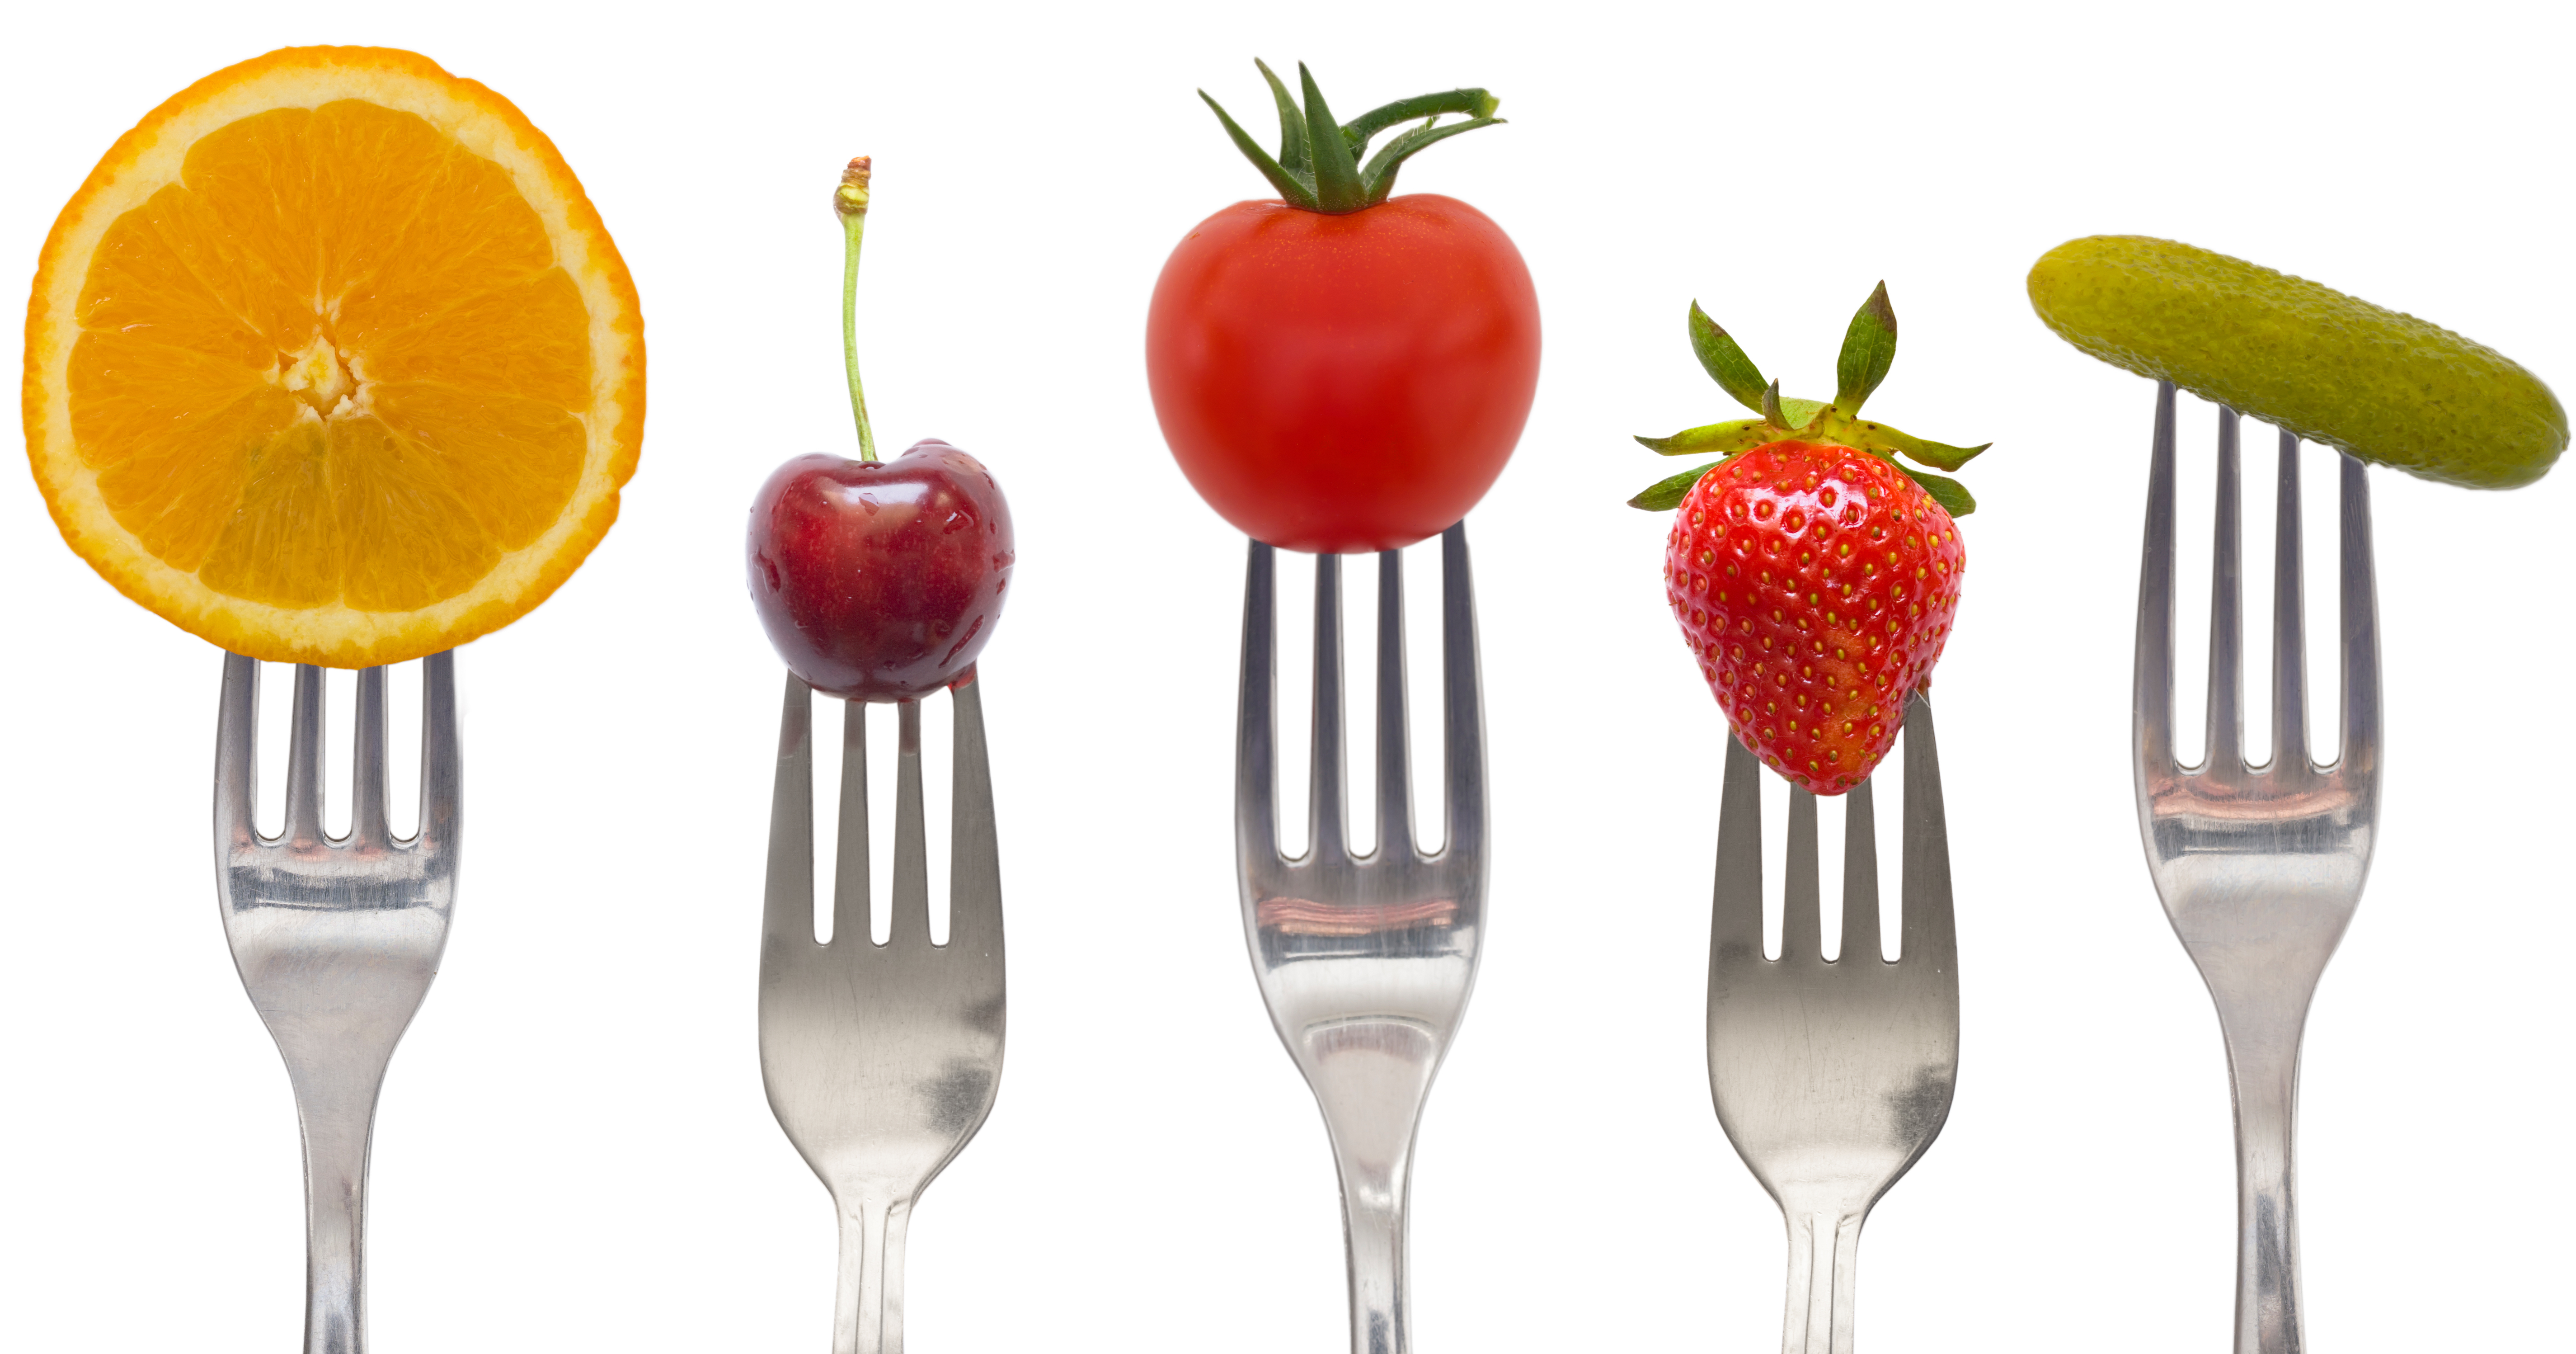 Health And Nutrition 15 Free Hd Wallpaper - ListToday